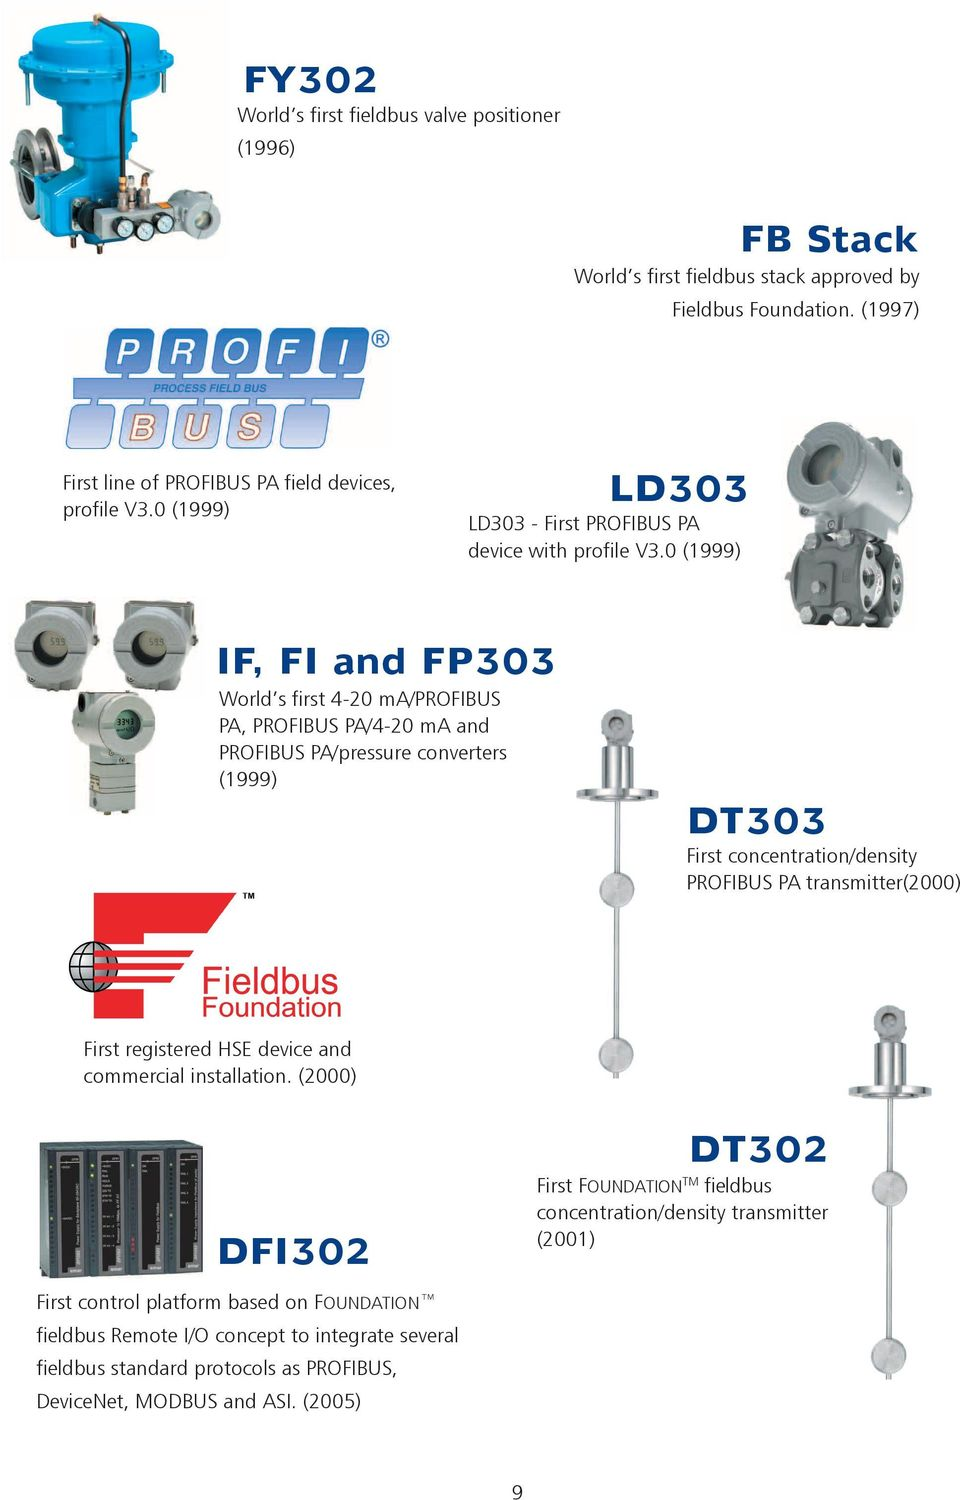 0 (1999) IF, FI and FP303 World s first 4-20 ma/profibus PA, PROFIBUS PA/4-20 ma and PROFIBUS PA/pressure converters (1999) DT303 First concentration/density PROFIBUS PA transmitter(2000)